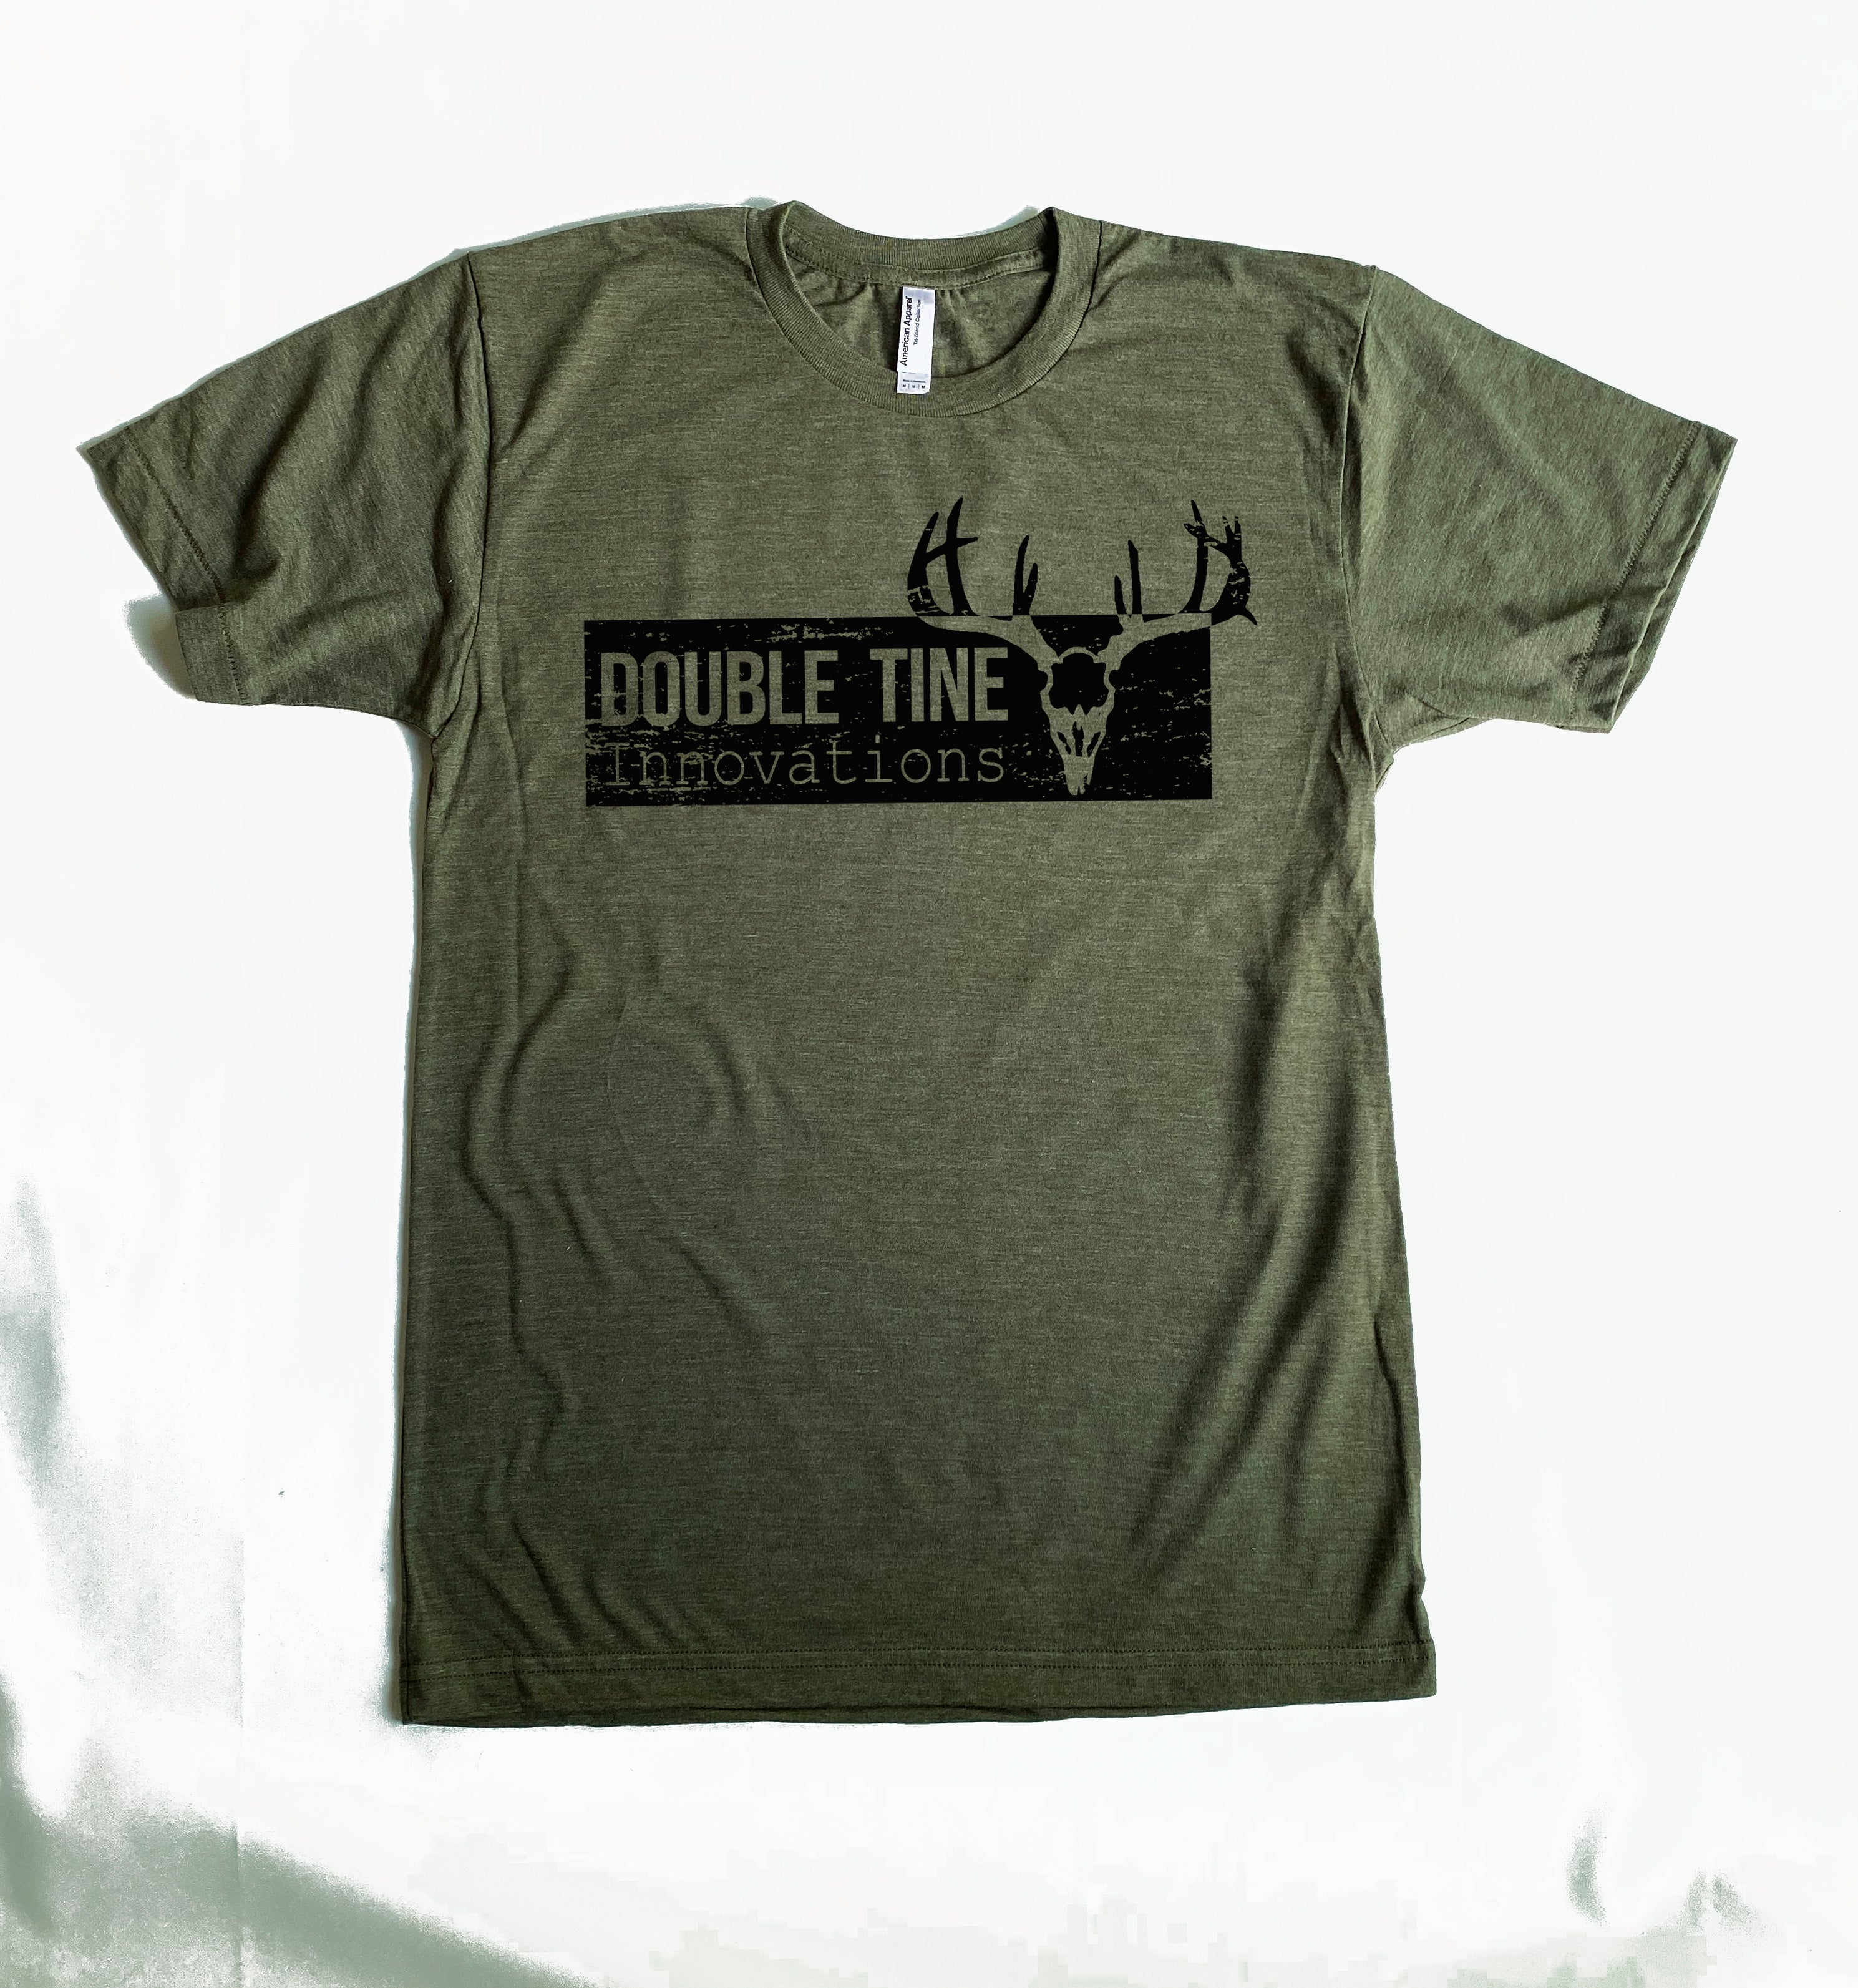 Heathered Army Green Short Sleeve Double Tine Distressed Logo T Shirt